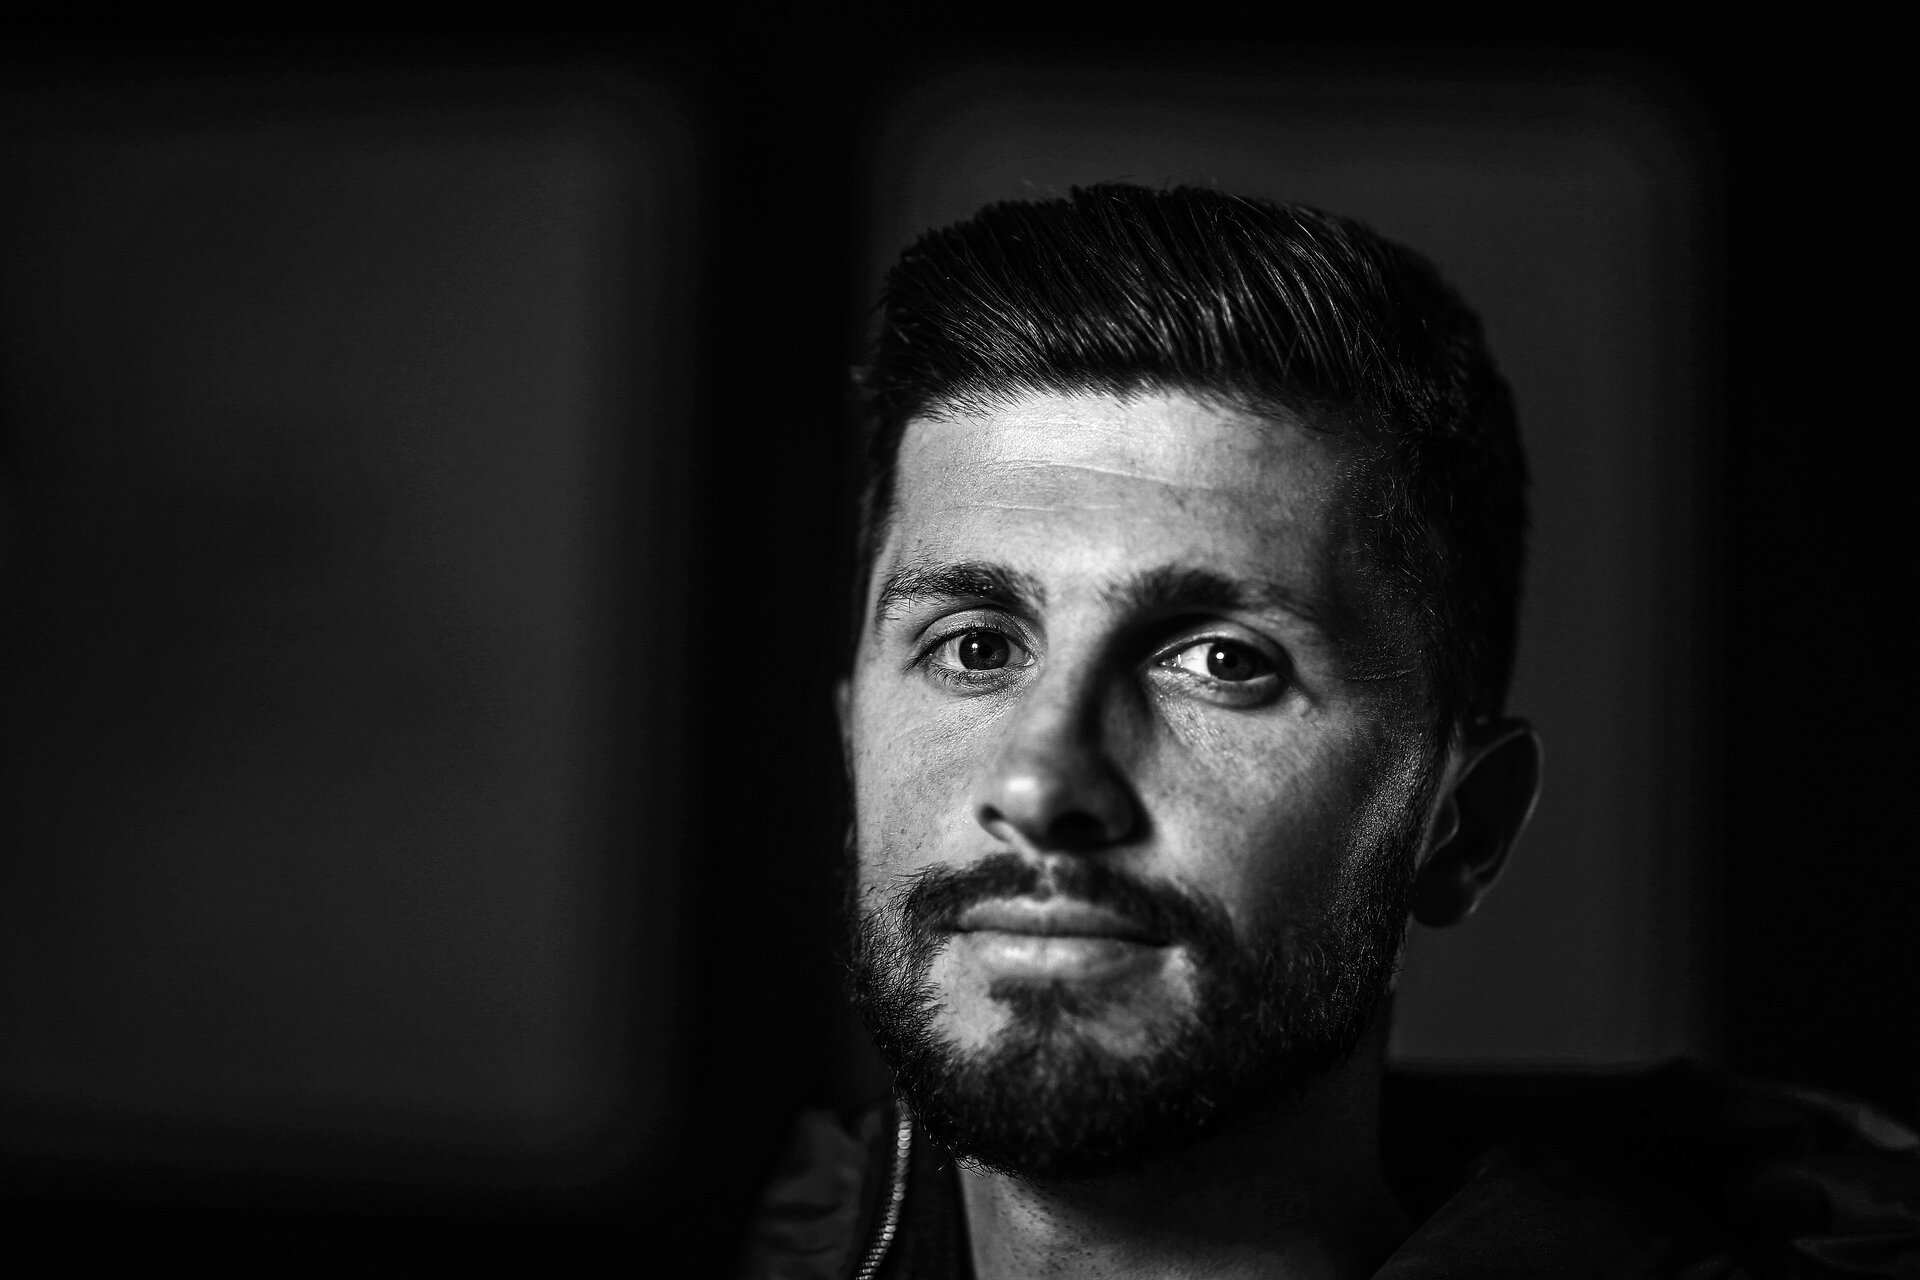 SOUTHAMPTON, ENGLAND - FEBRUARY 22: Southampton FC's Shane Long pictured at the Staplewood Campus for the club's match day magazine, on February 22, 2019 in Southampton, England. (Photo by Matt Watson/Southampton FC via Getty Images)